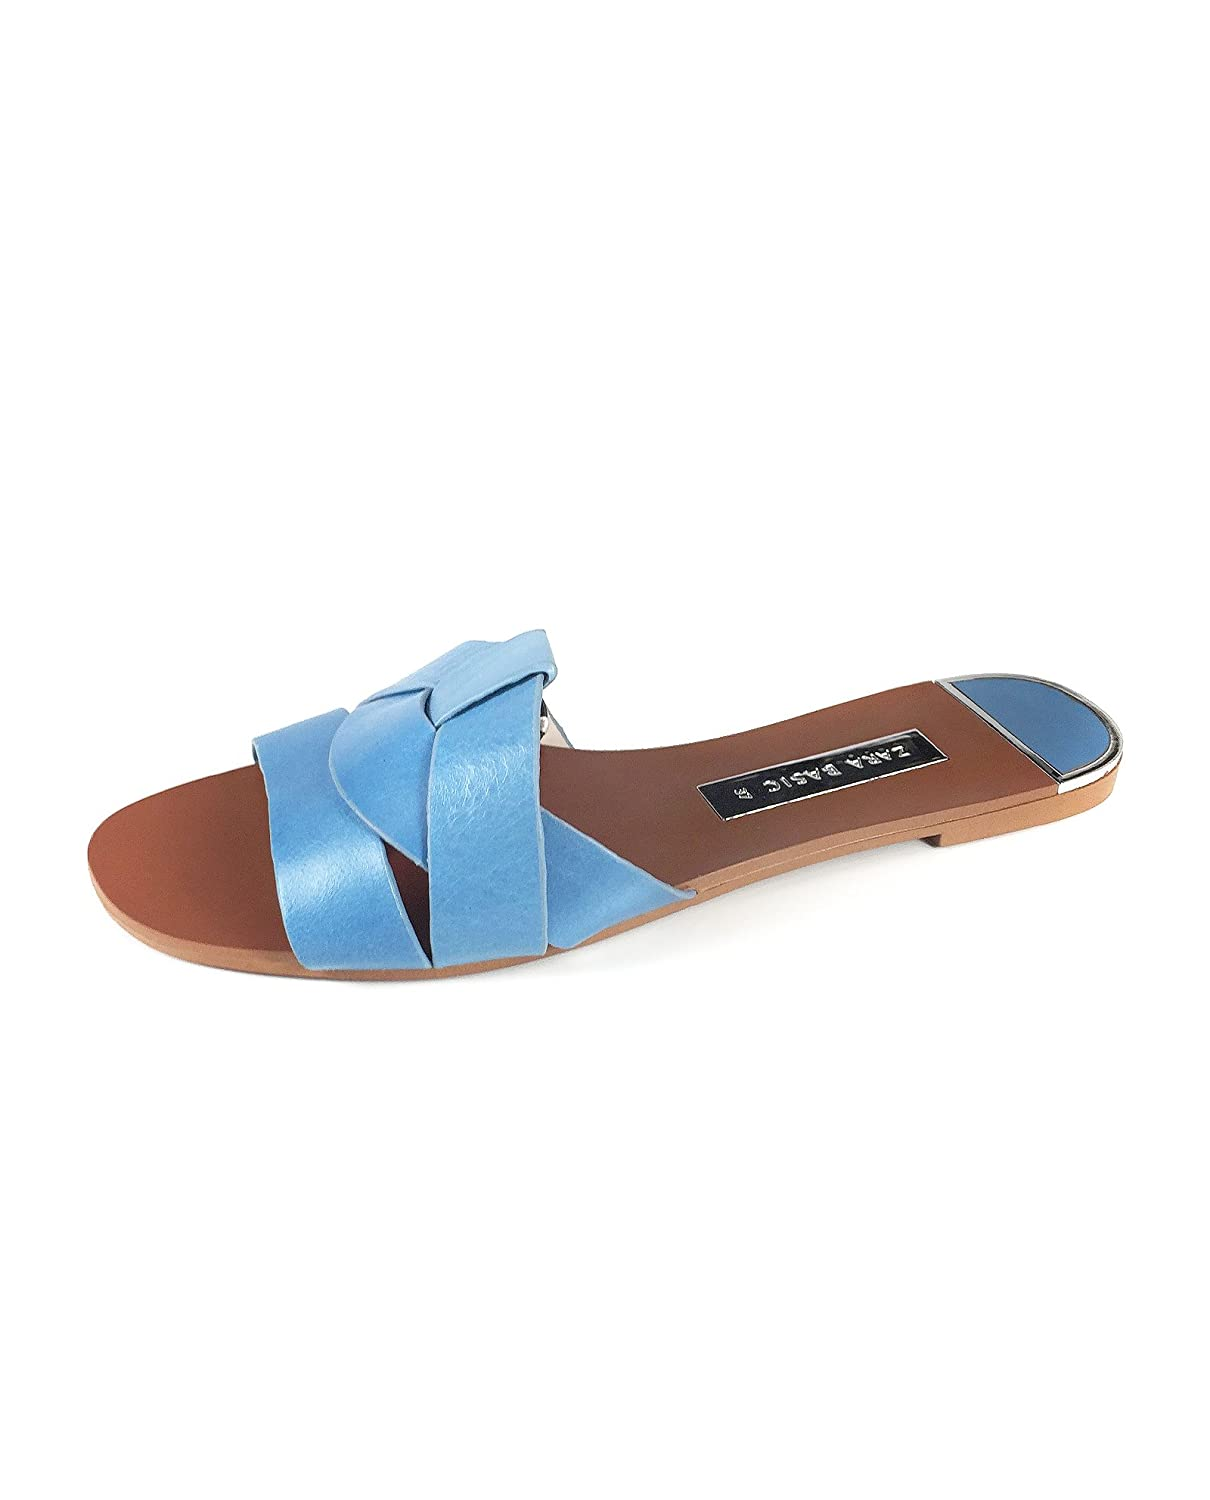 Zara Women Leather crossover sandals 2640/301 B07D7W1QPL 36 EU | 6 US | 3 UK